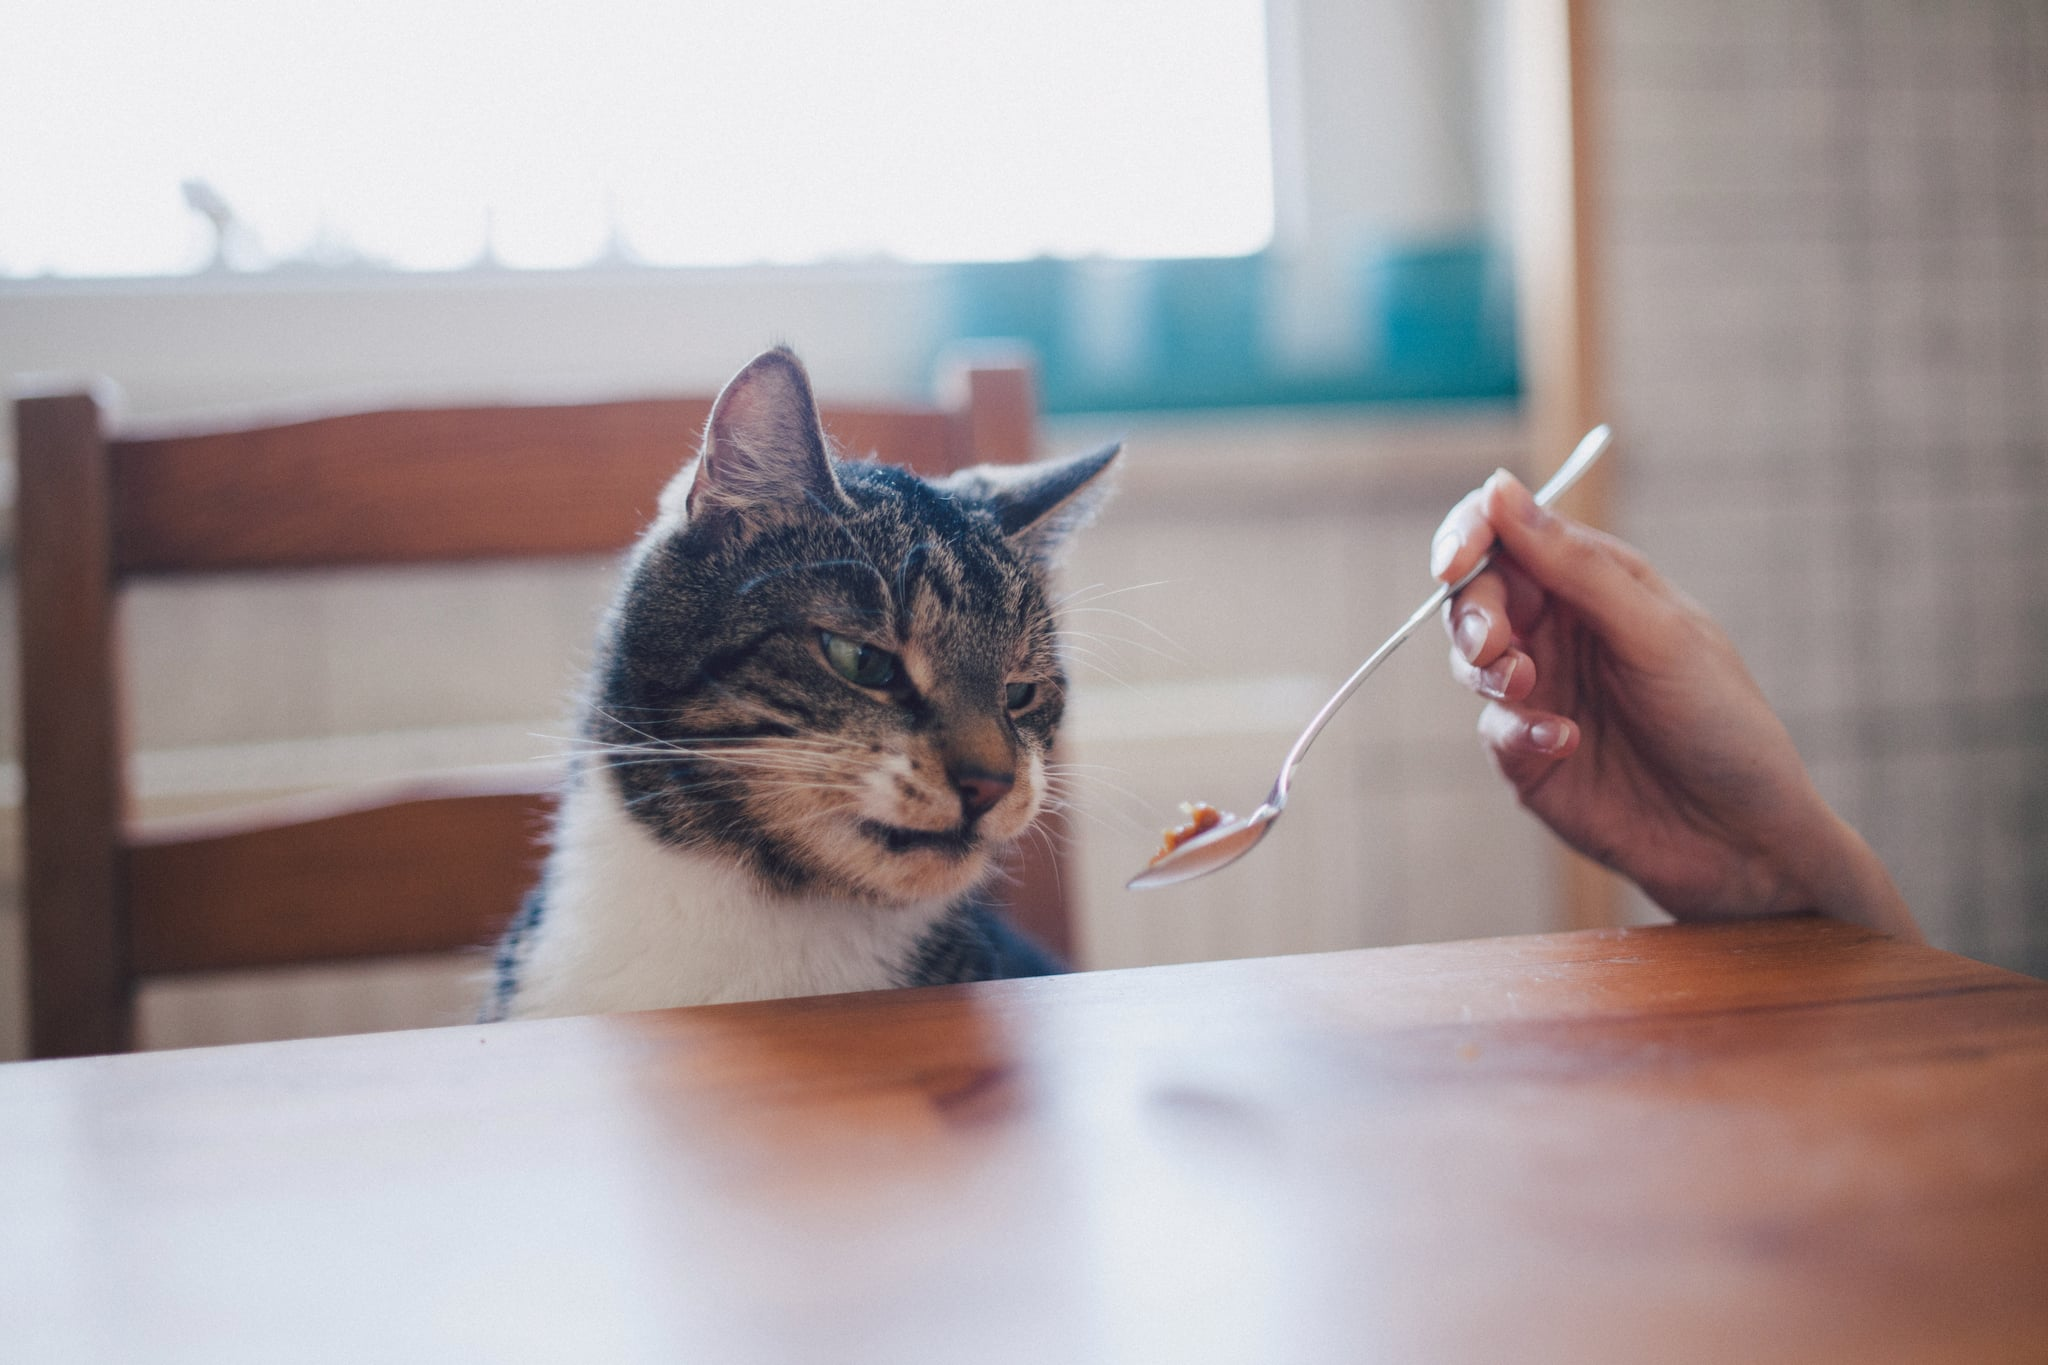 Cat looking disgusted from feeding with a spoon.